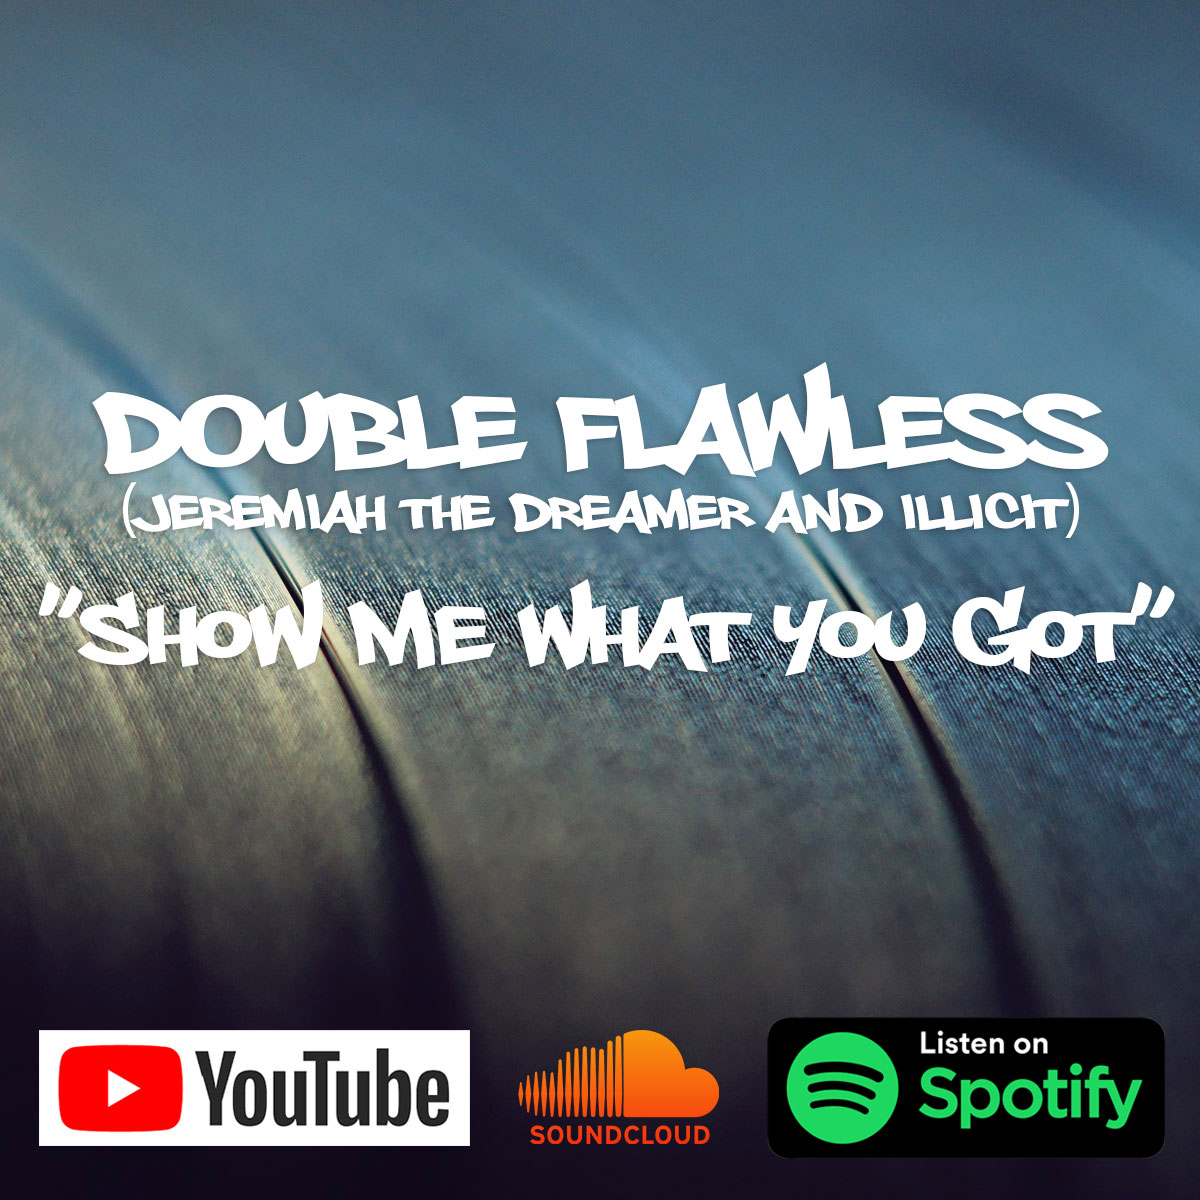 Show Me What You Got by Double Flawless